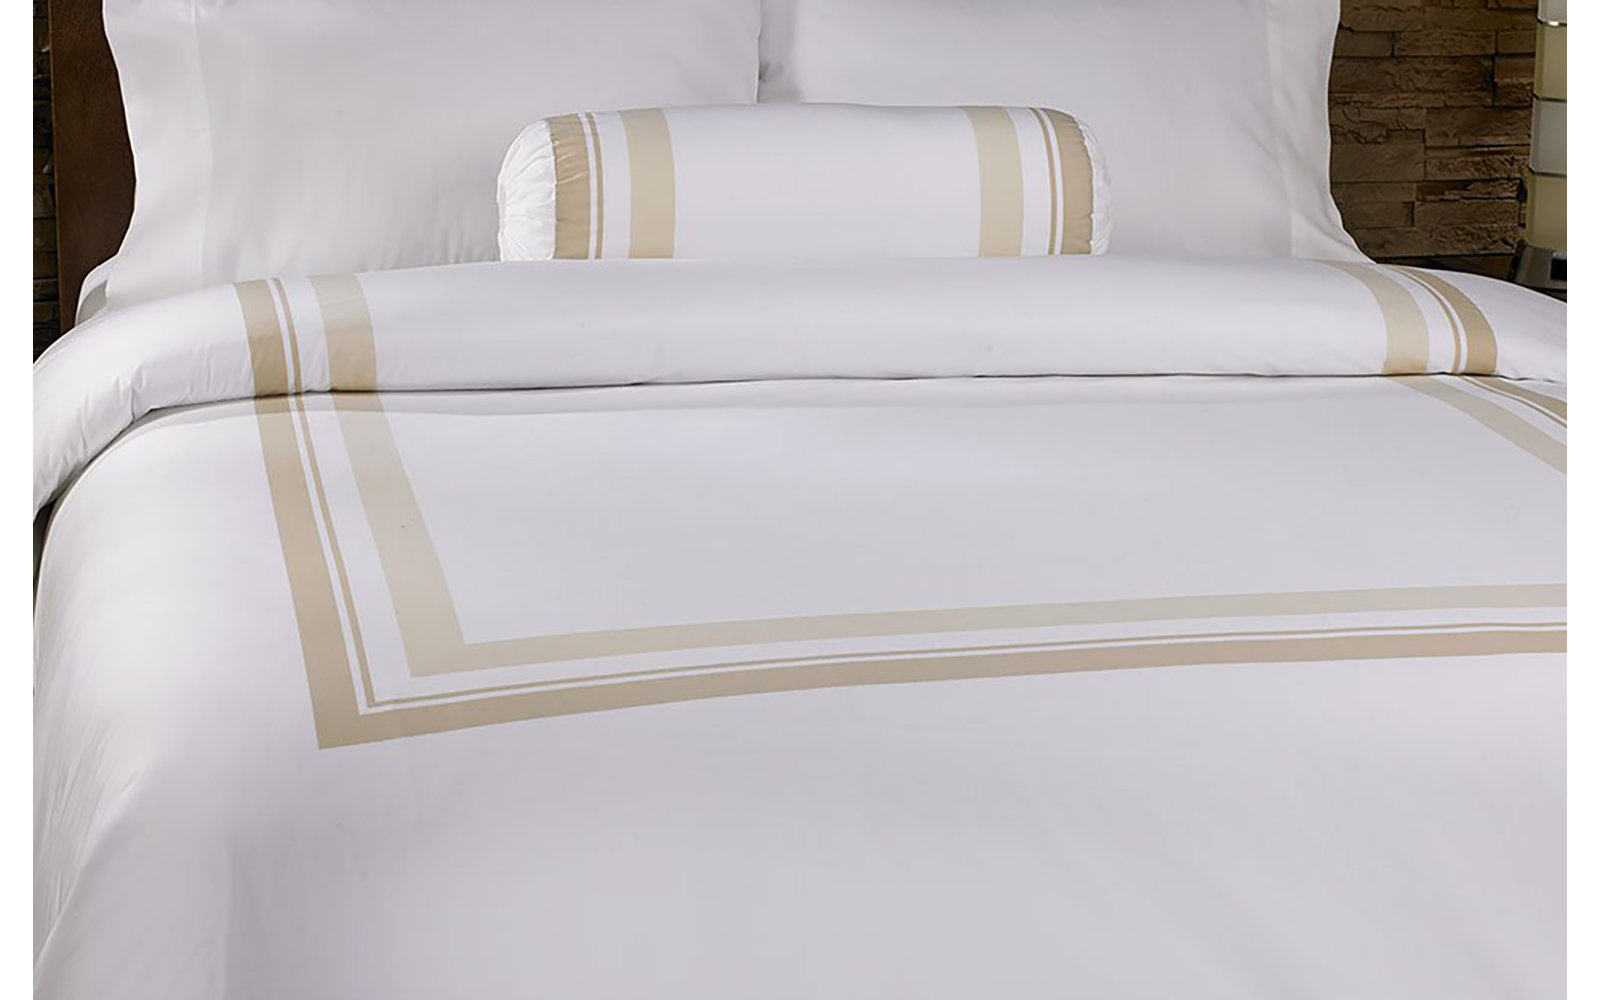 Marriott Frameworks Duvet Sheet Cover